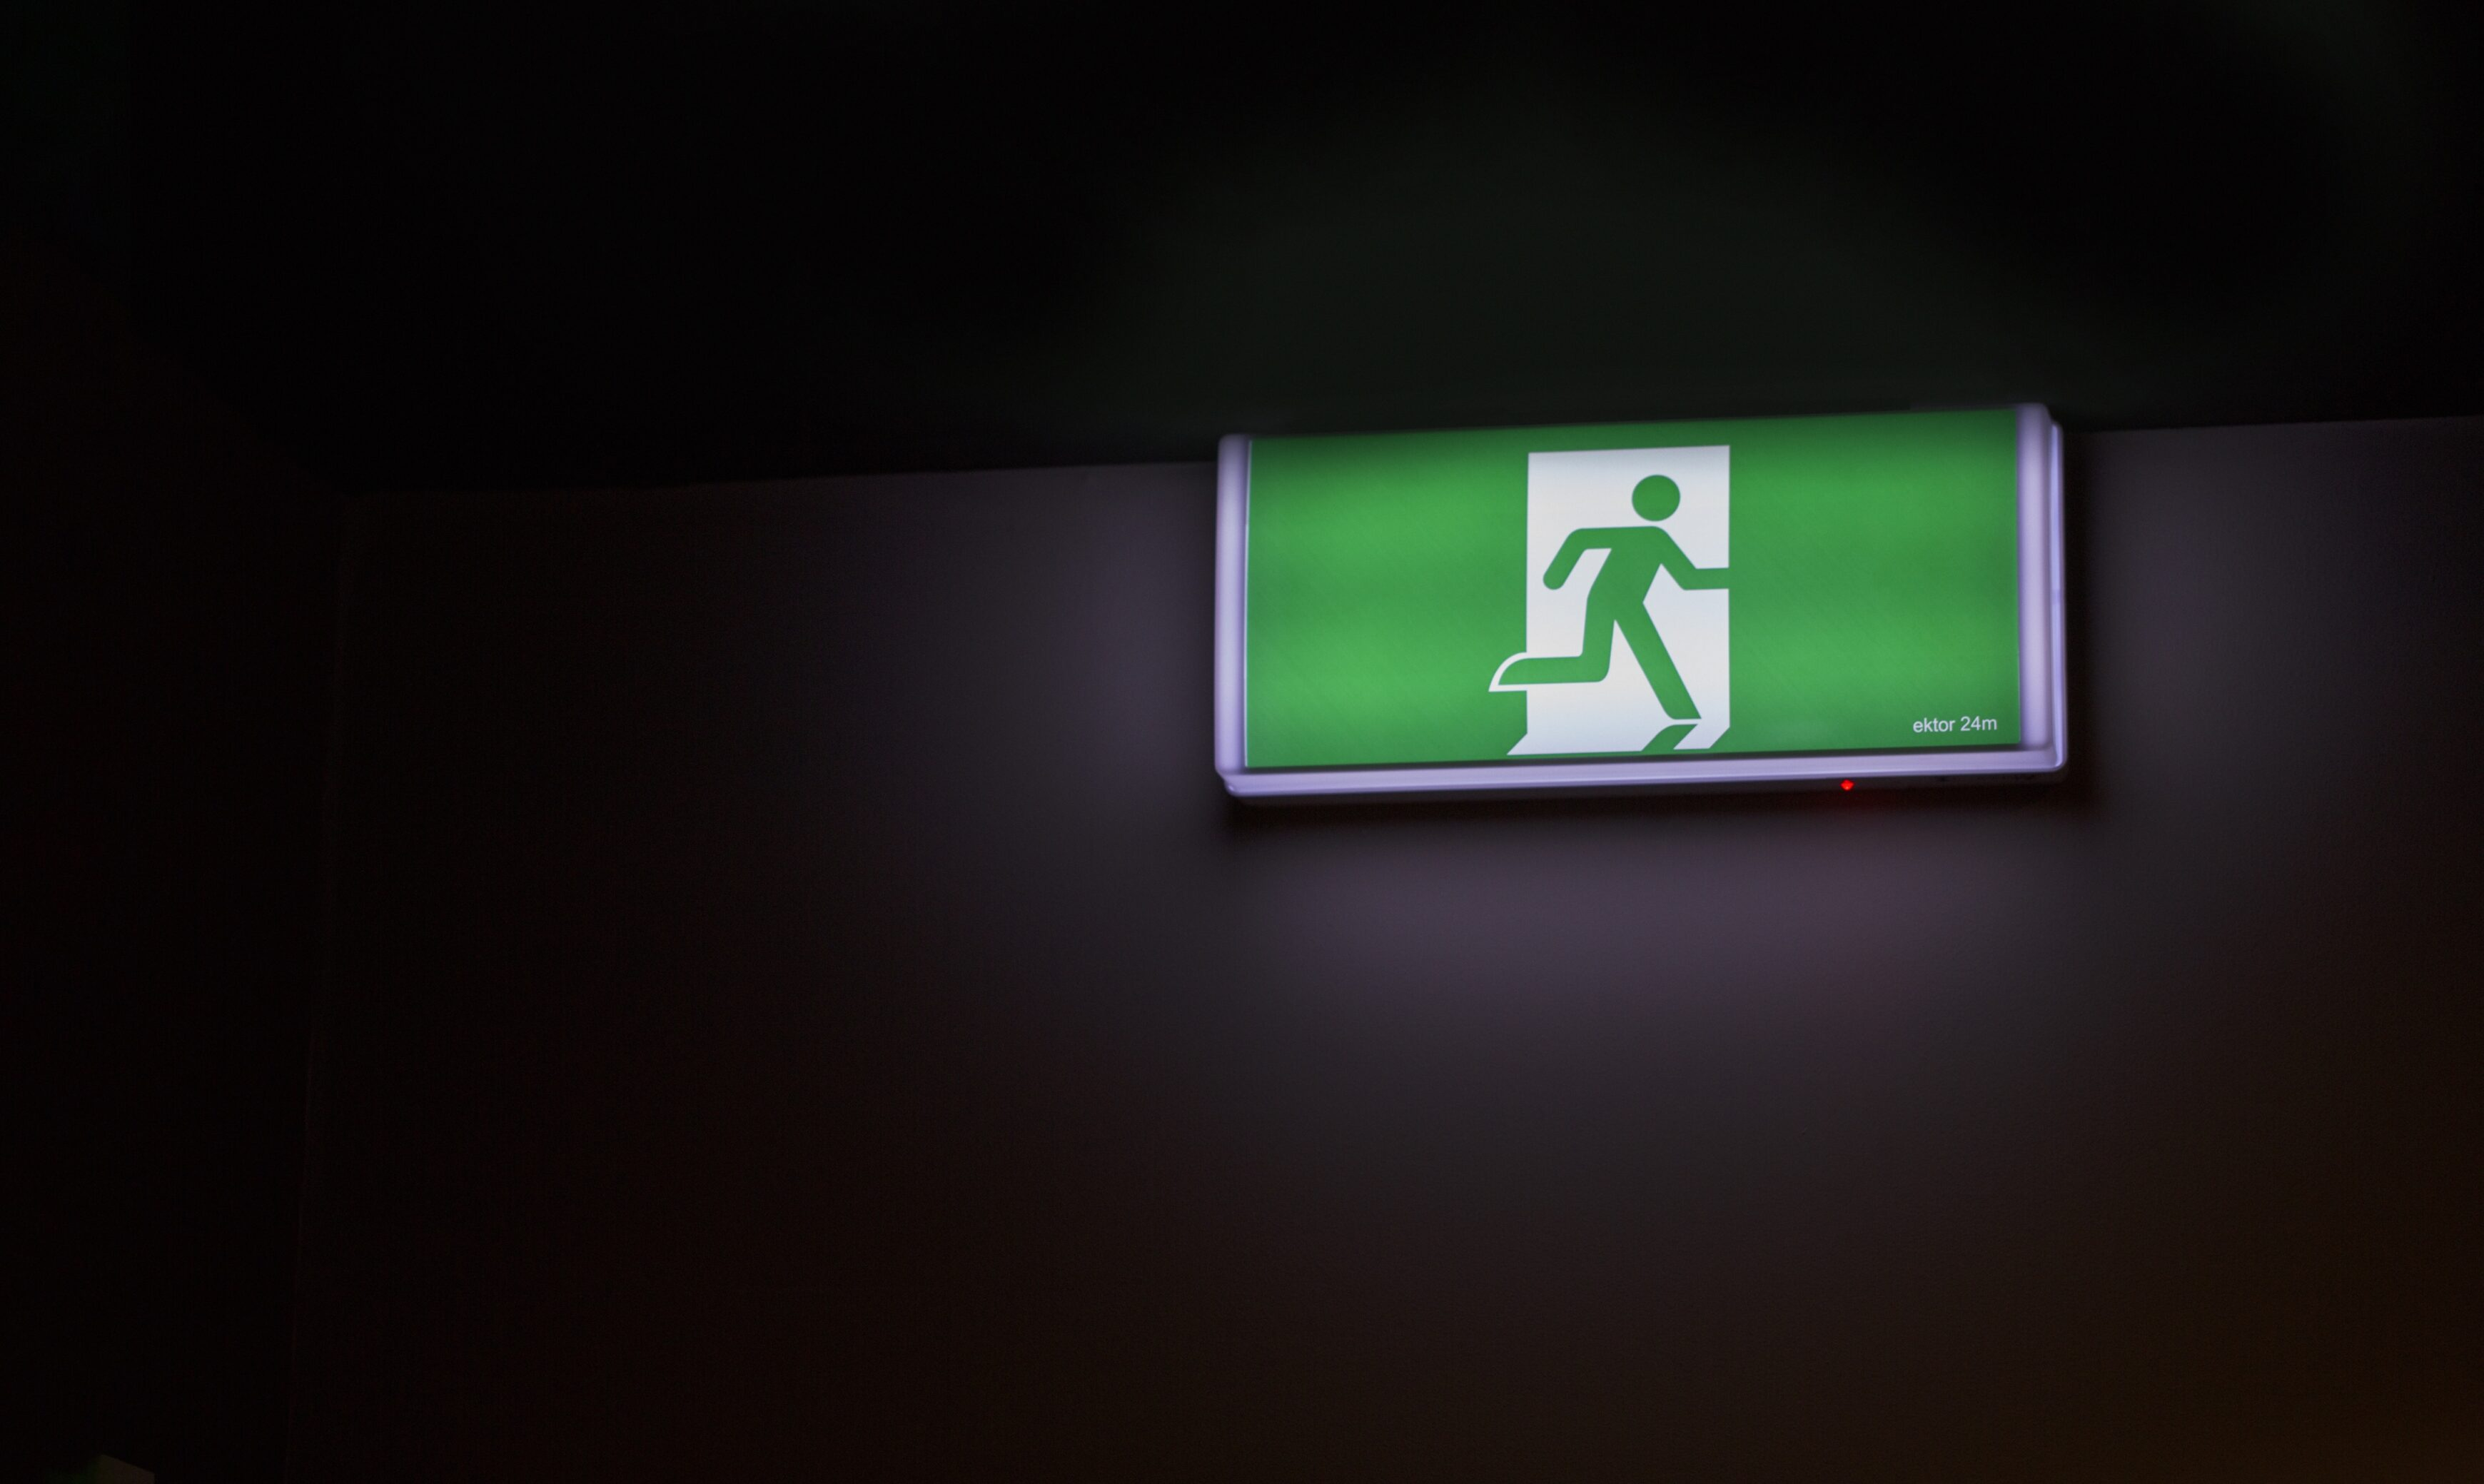 How Many Fire Exits does a Building Need?